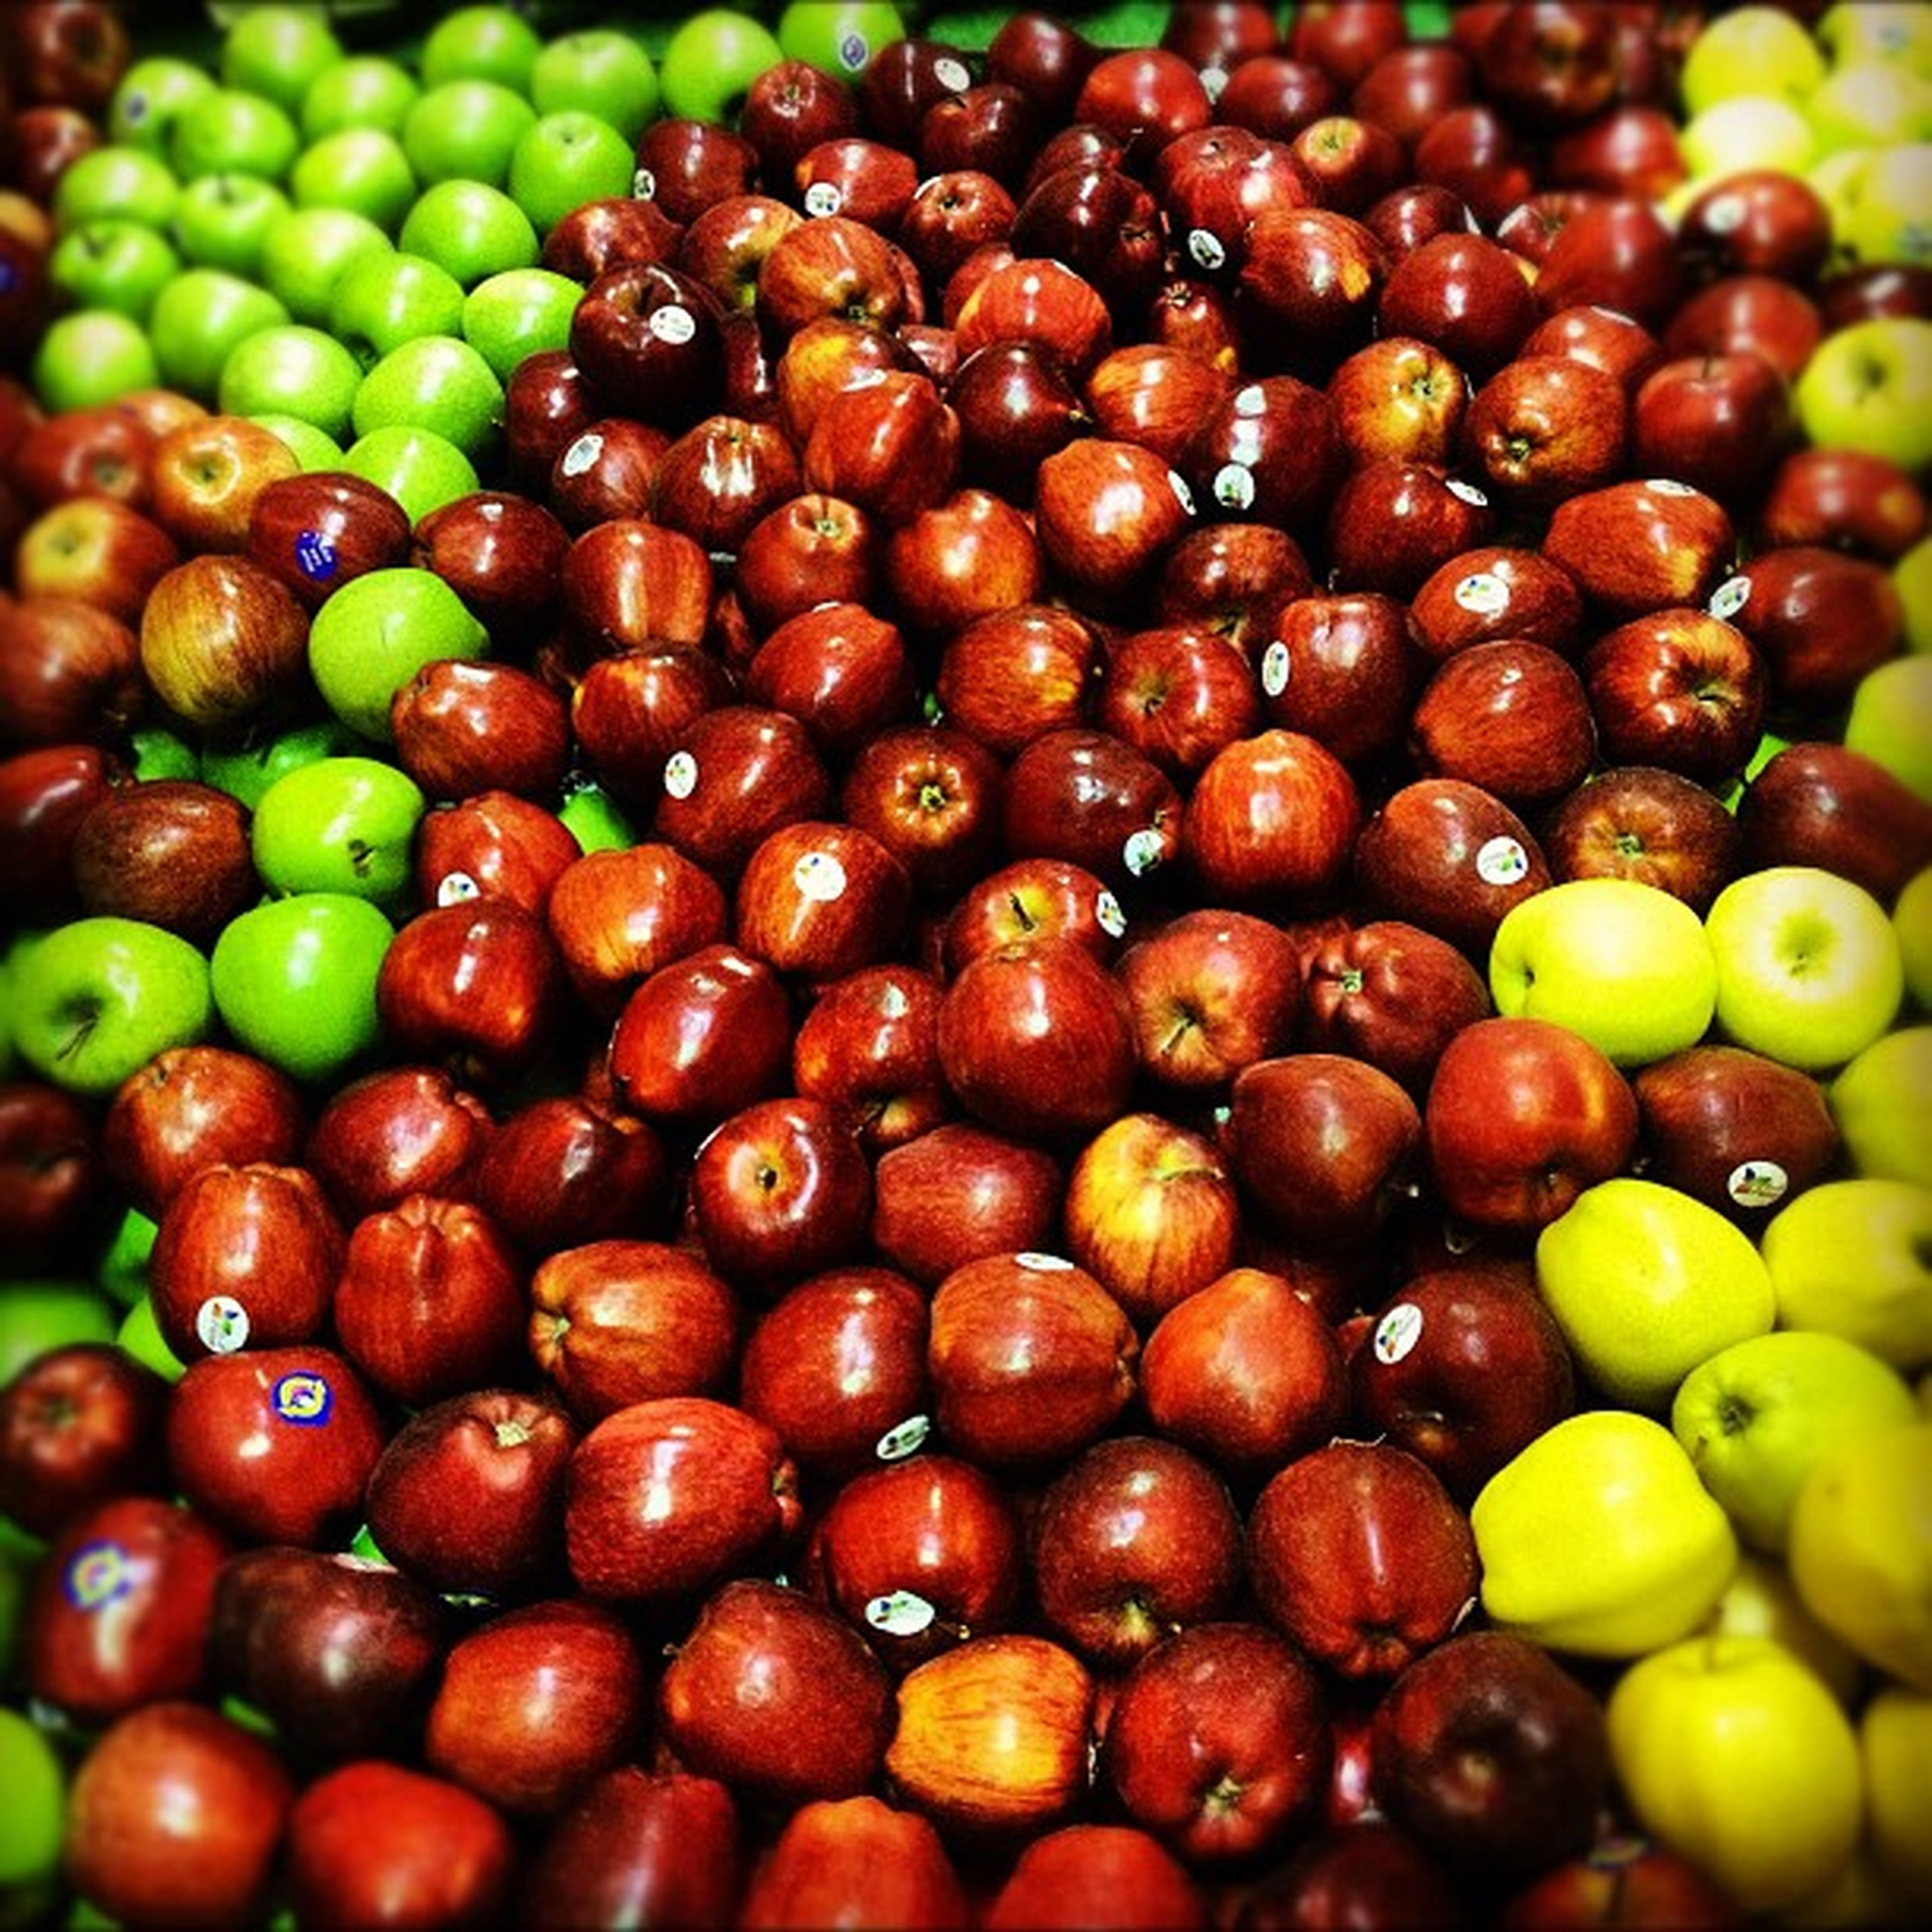 food and drink, food, healthy eating, freshness, fruit, large group of objects, abundance, full frame, for sale, backgrounds, retail, market, market stall, still life, red, ripe, indoors, choice, variation, organic